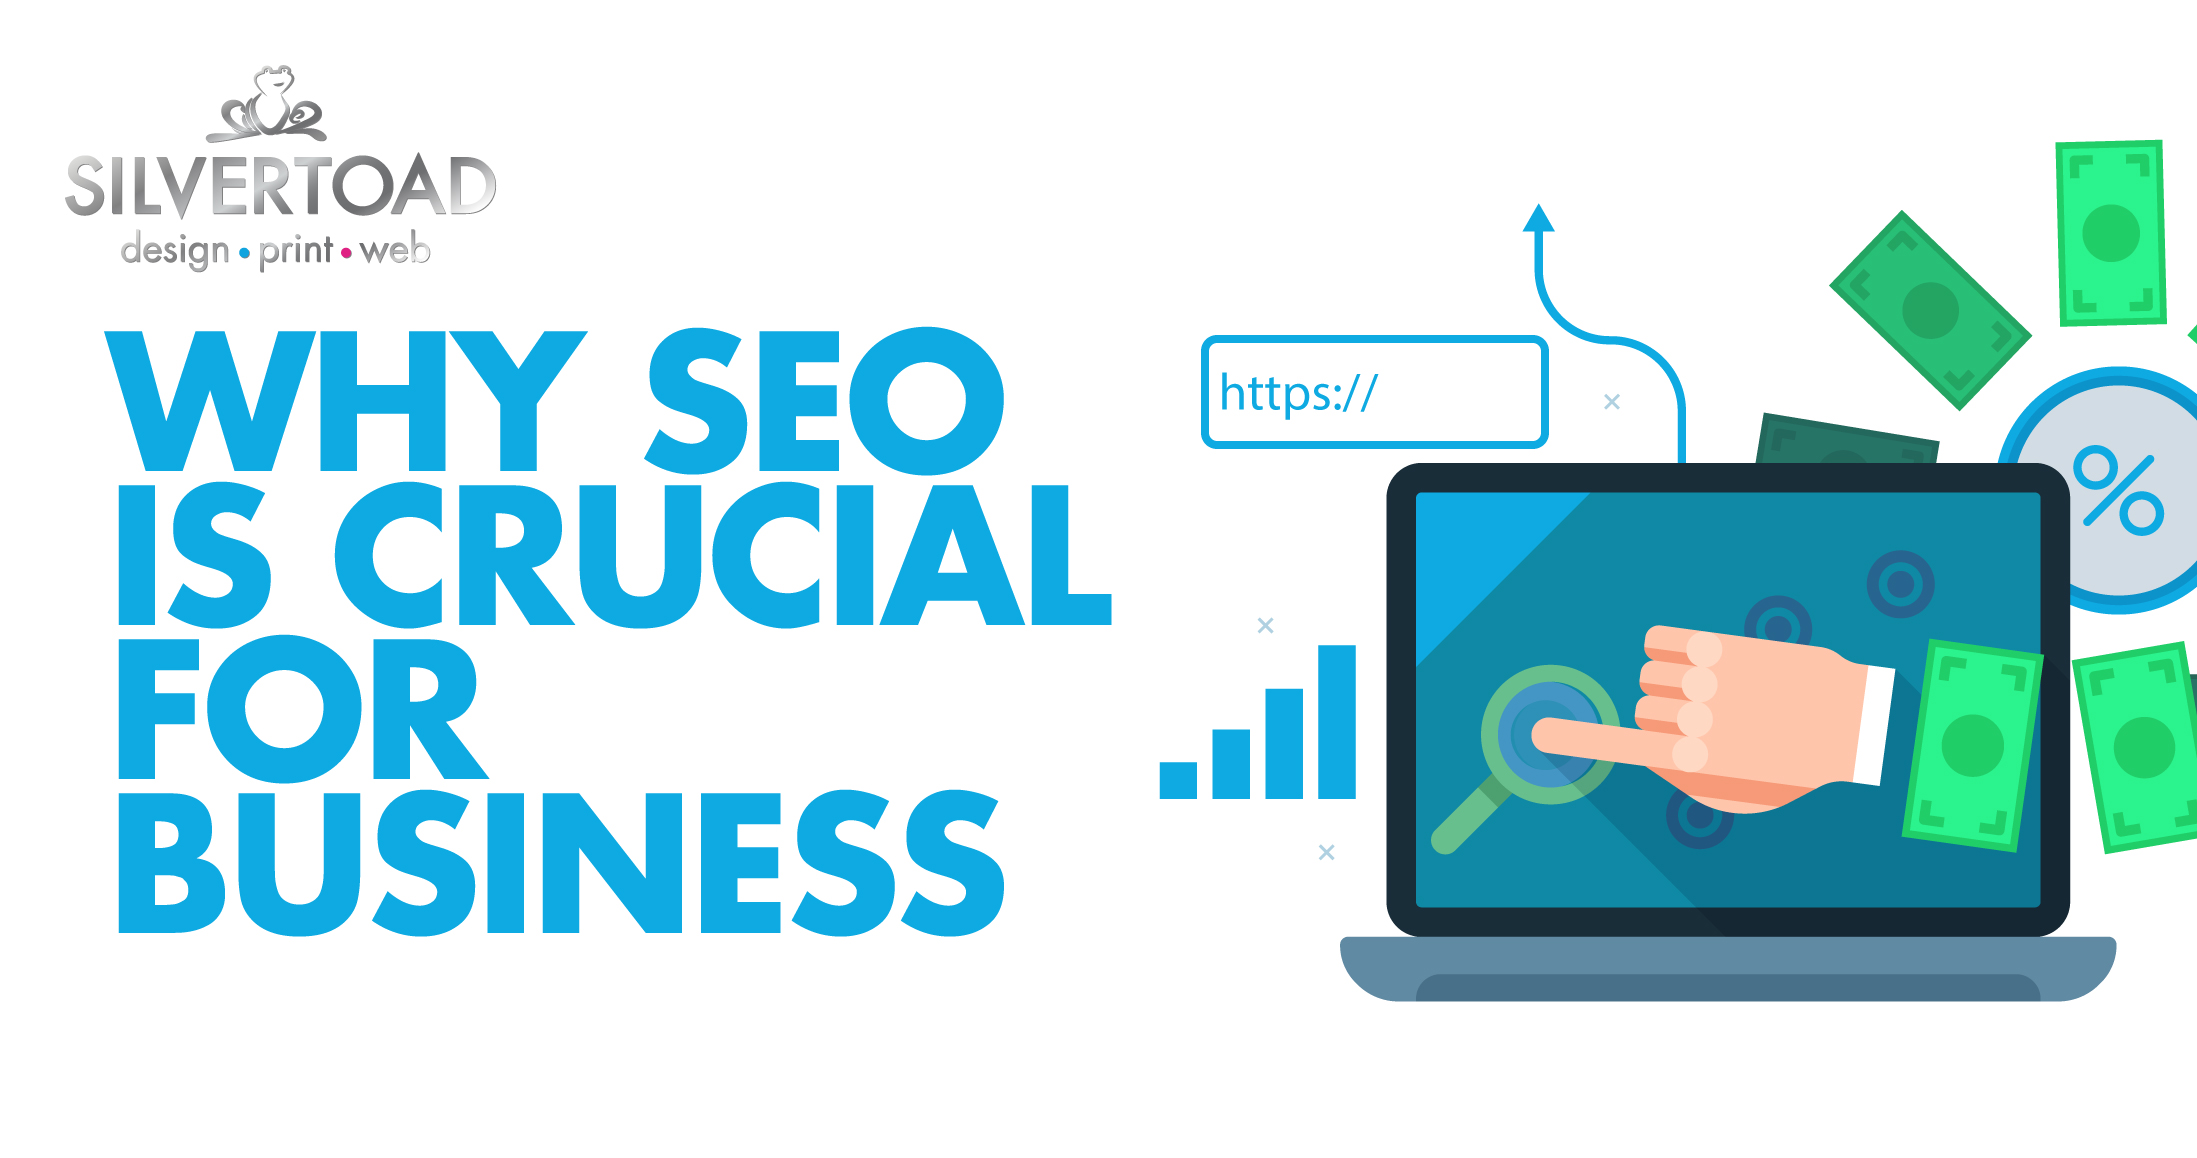 Why-SEO-is-crucial-for-business-Blog